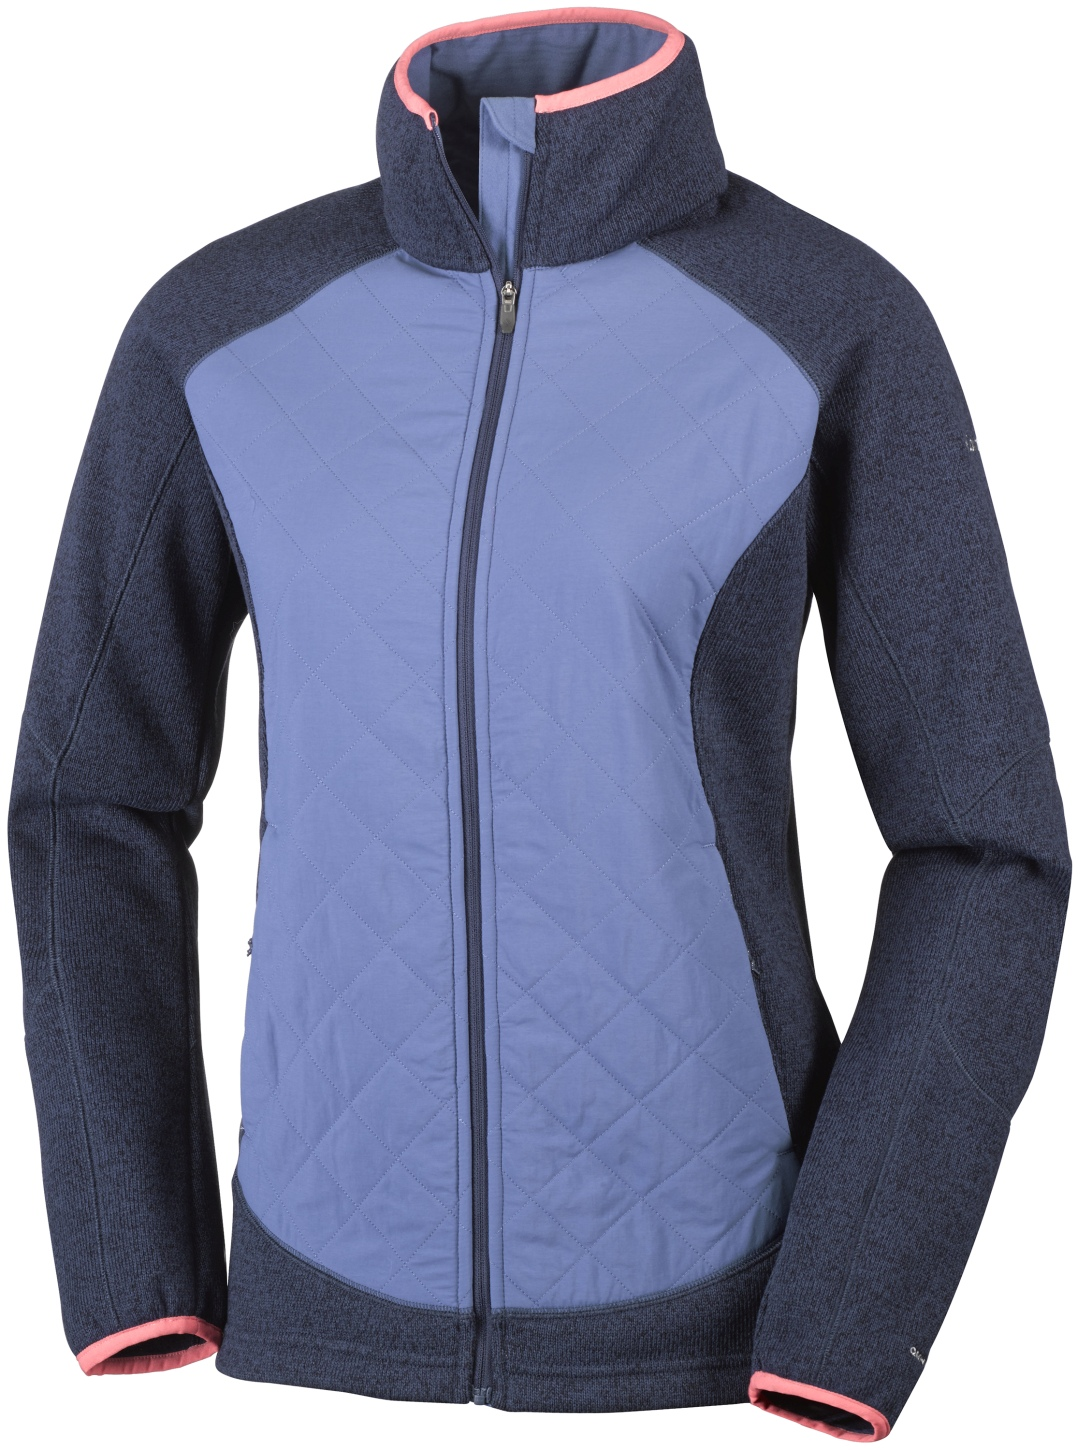 Columbia Hybride Jacke Altitude Aspect für Damen Nocturnal Heather-30